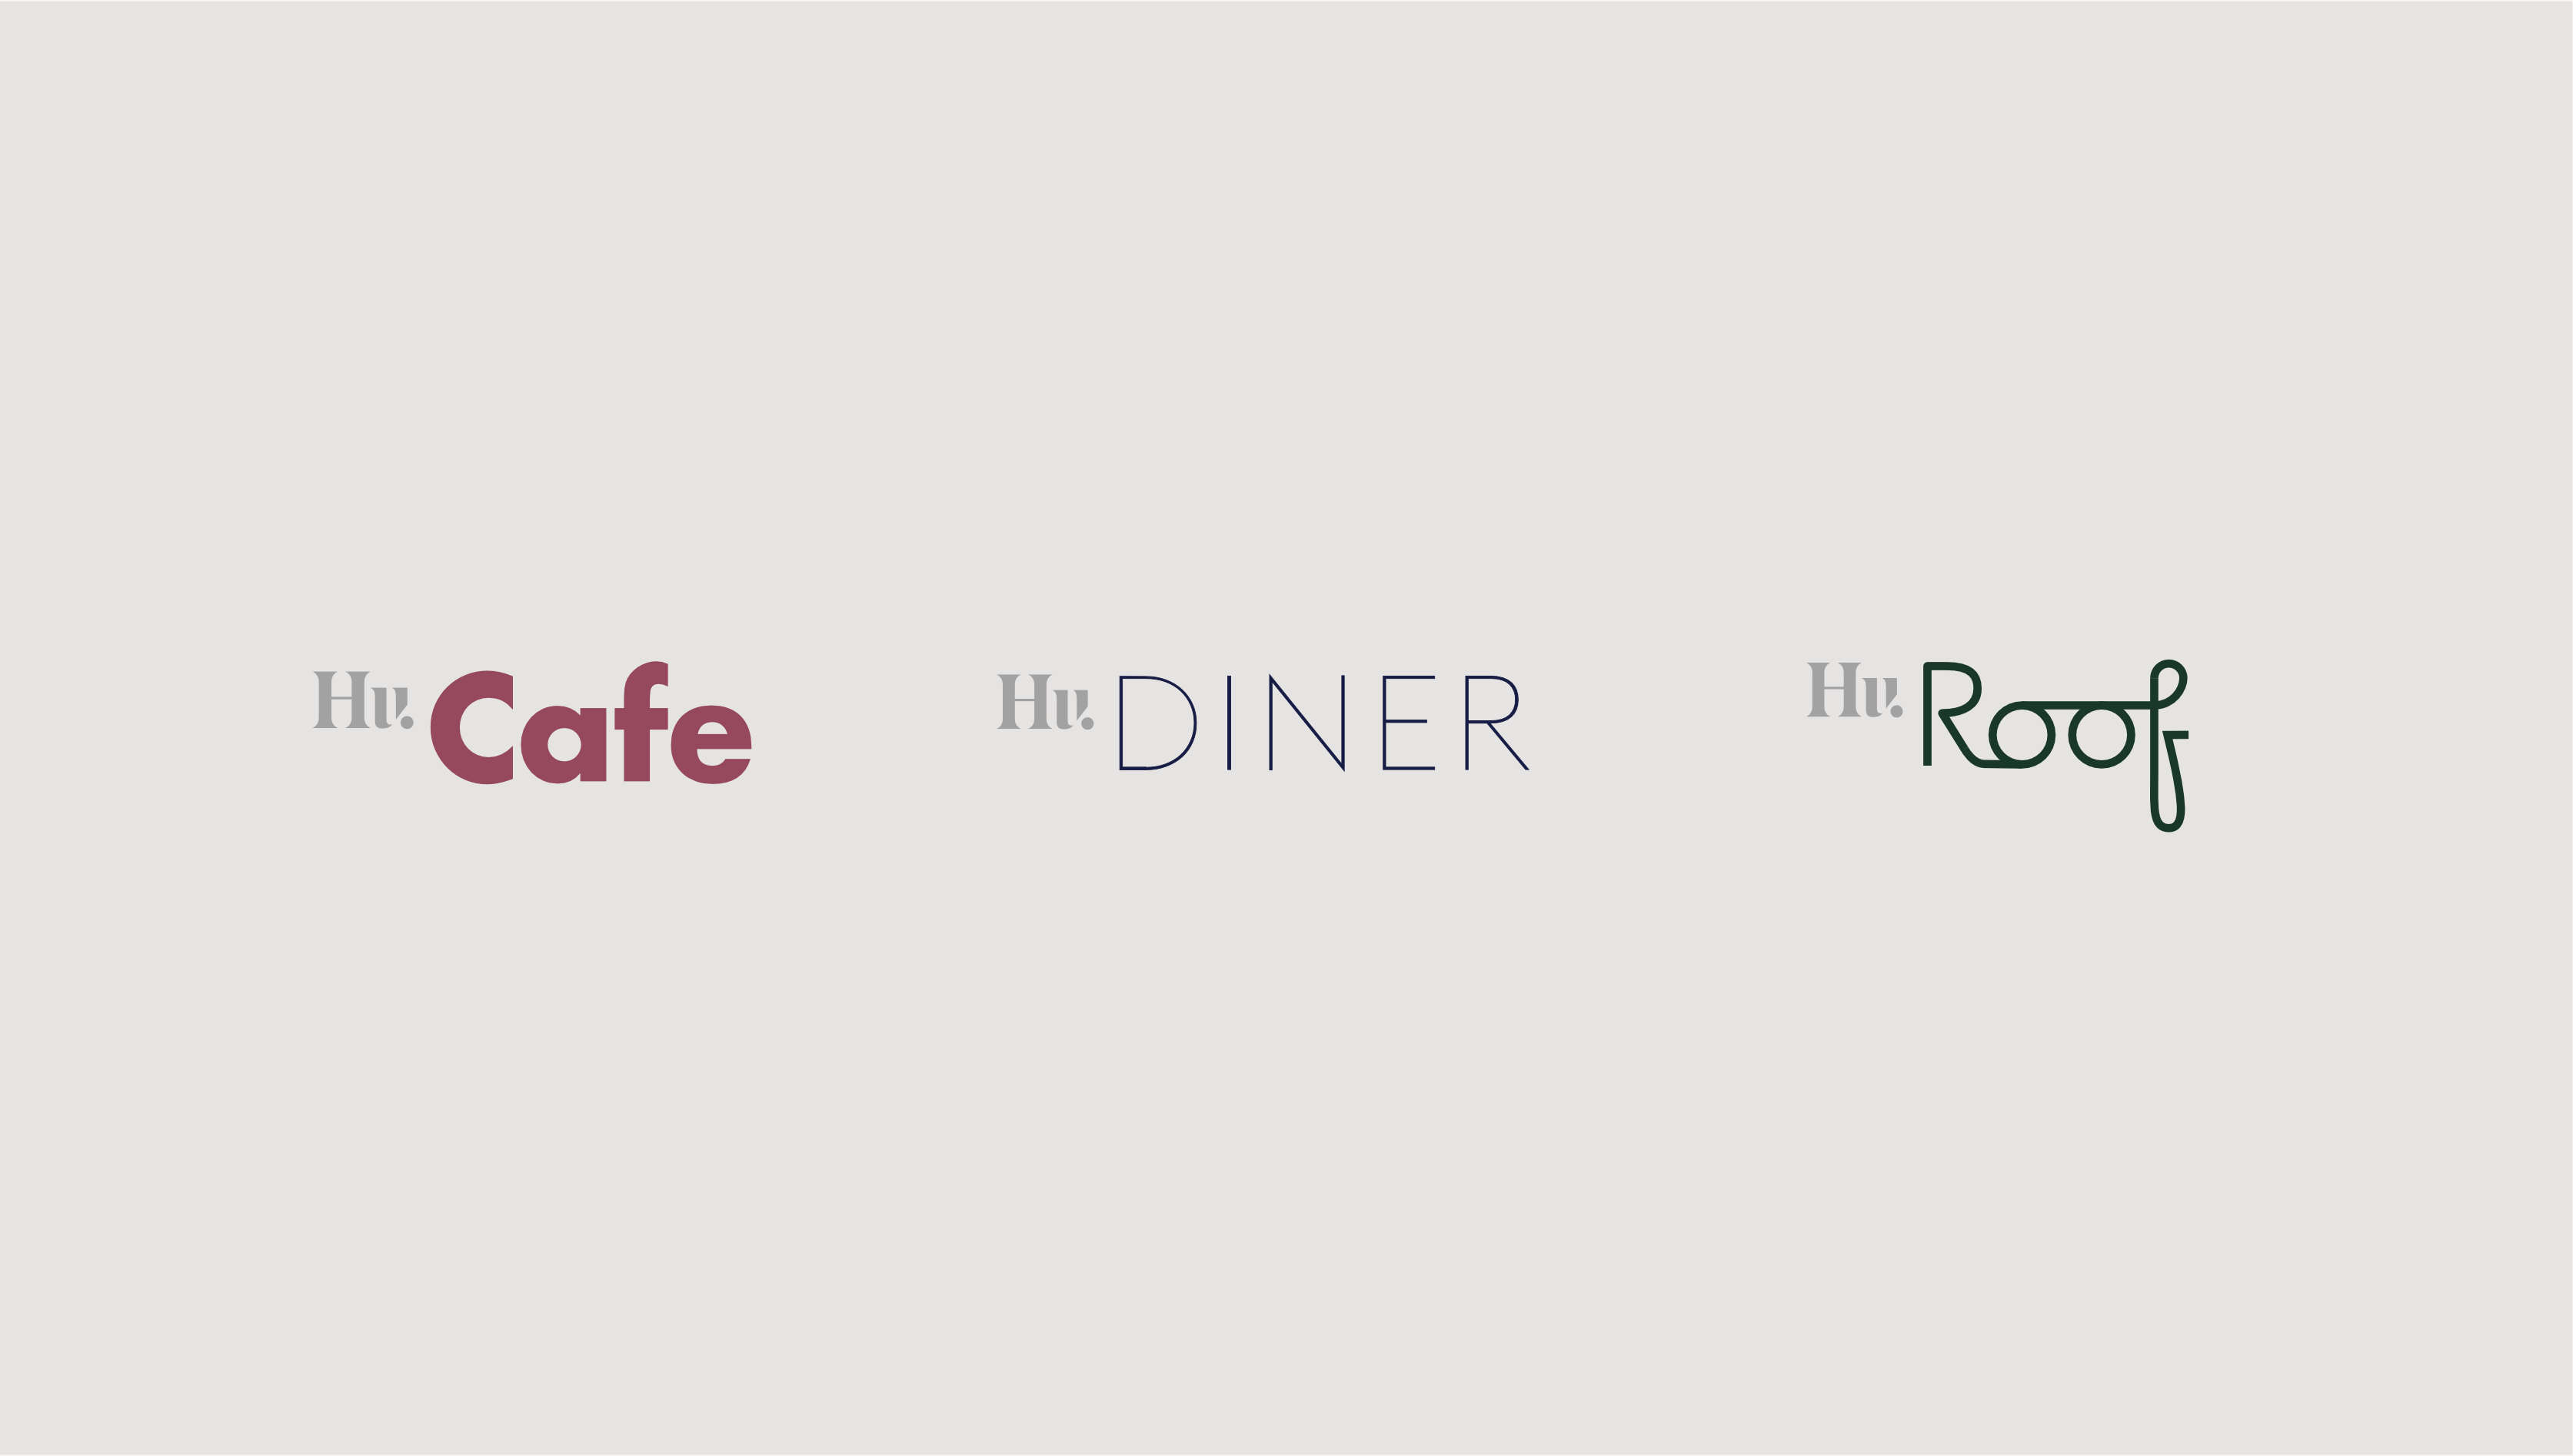 Logos for Hu. Cafe, Hu. Diner, and Hu. Roof on grey color field.